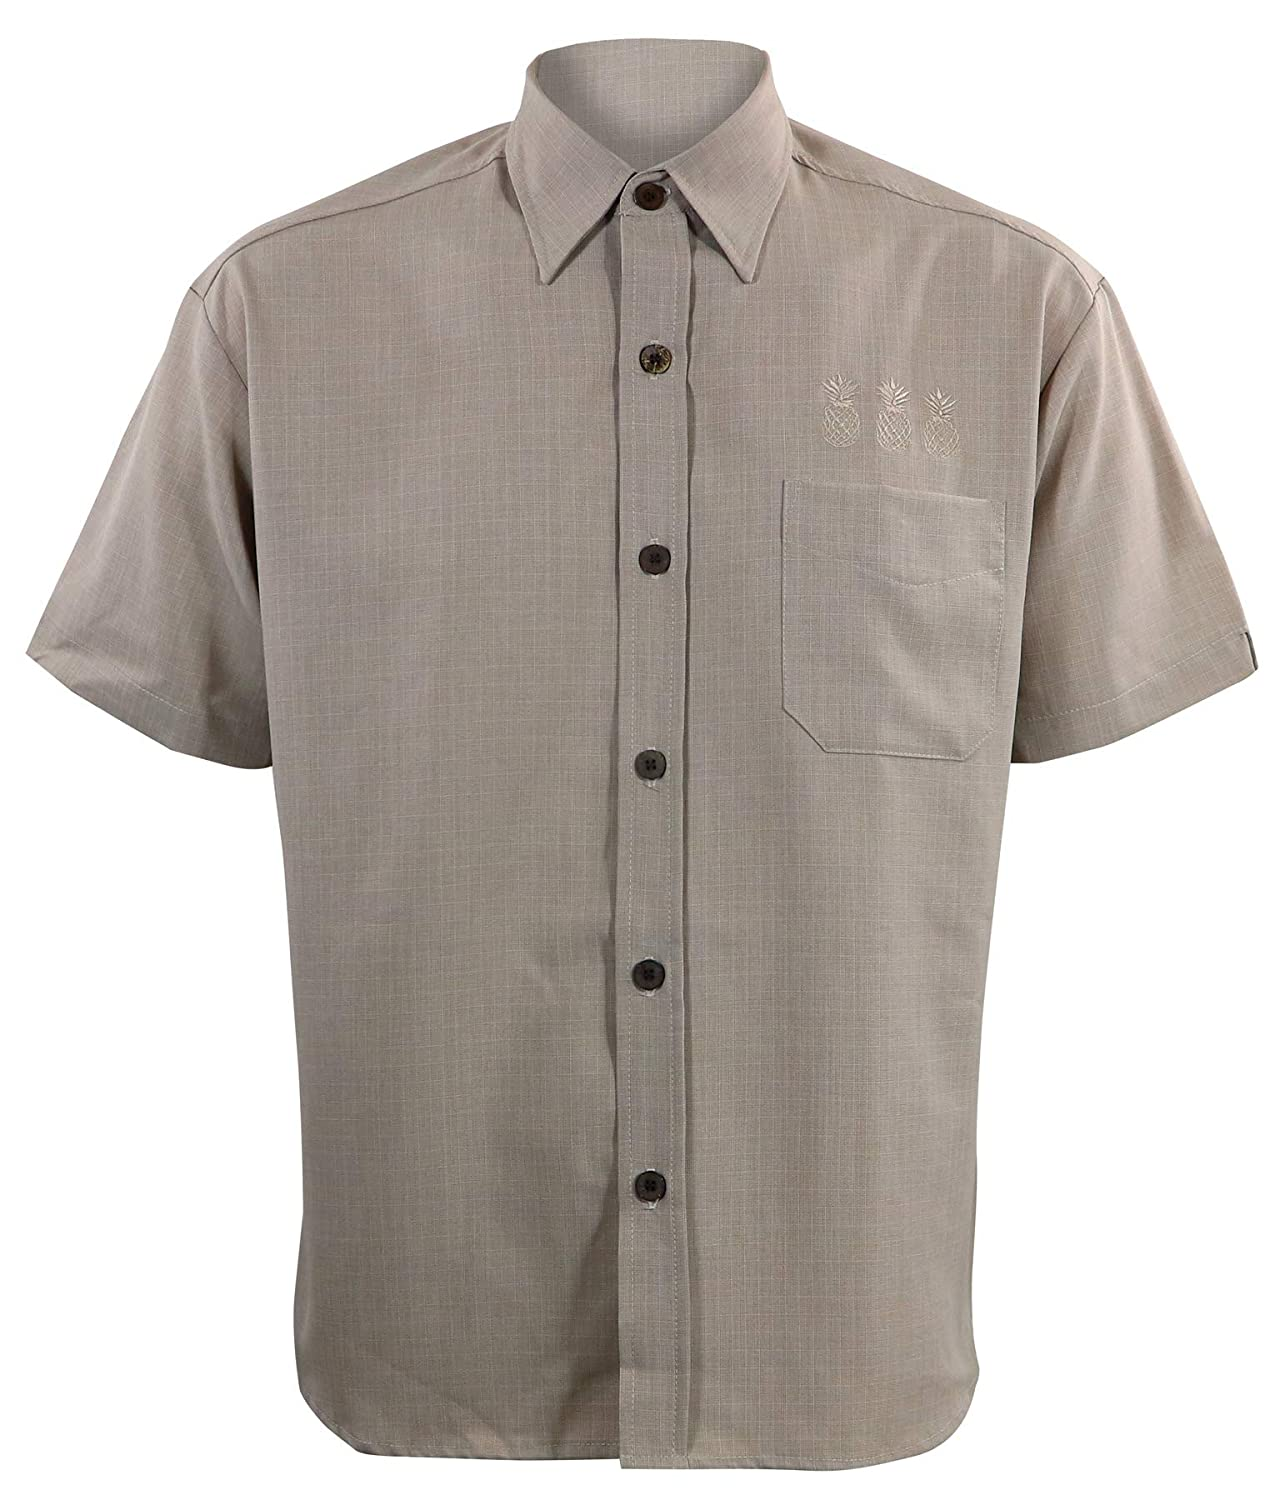 Mens Vintage Shirts – Retro Shirts Steady Clothing Mens Pineapple Mixer Button Up Bowling Shirt Stone $57.99 AT vintagedancer.com